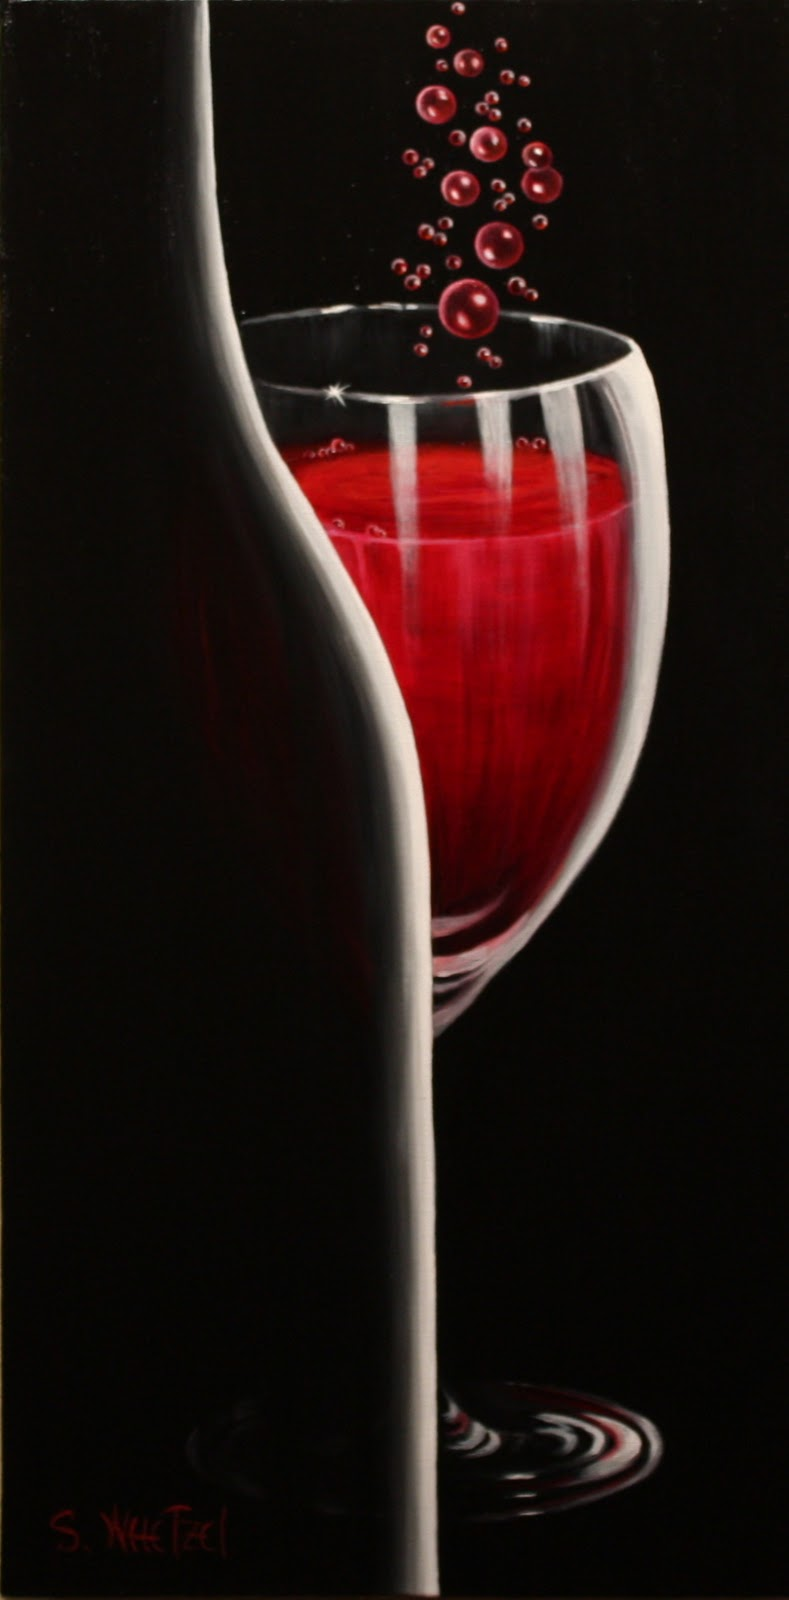 Abstract paintings of wine glasses bing images for How to paint a wine glass with acrylics